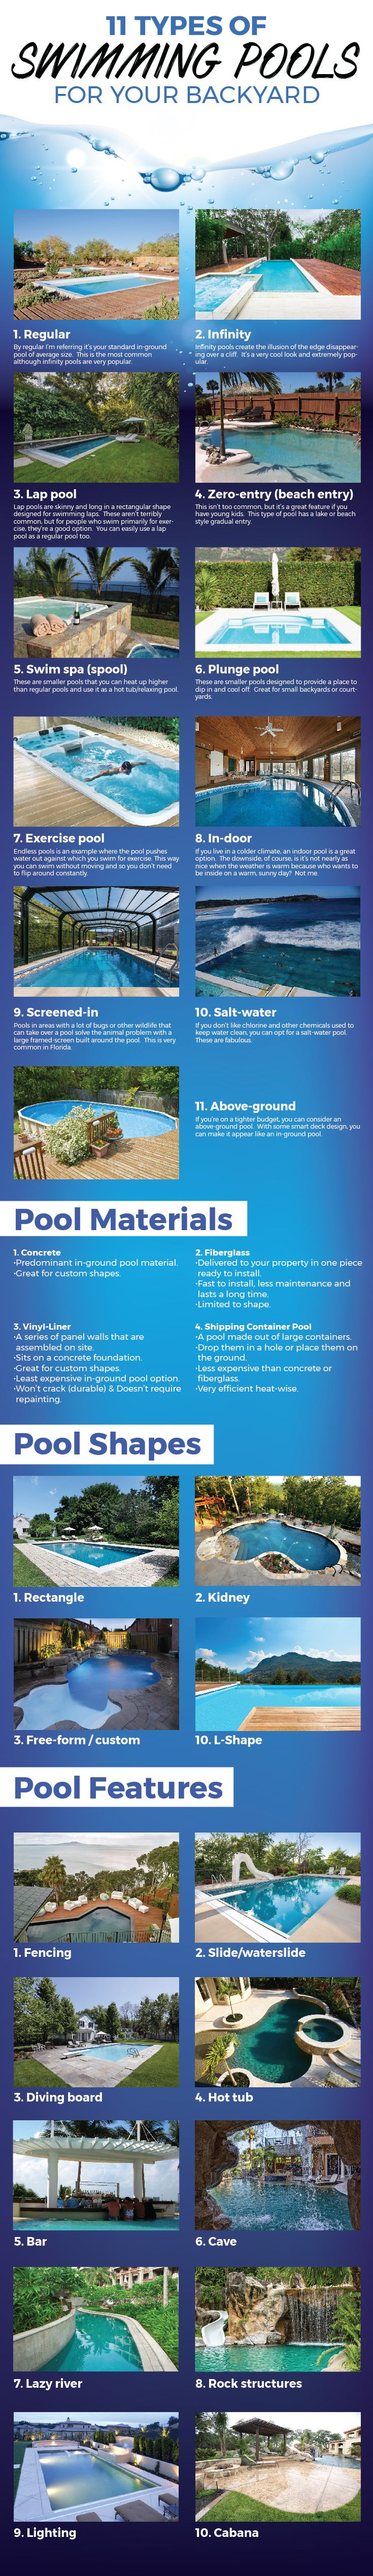 355 best images about swimming pool ideas on pinterest for Types of swimming pool